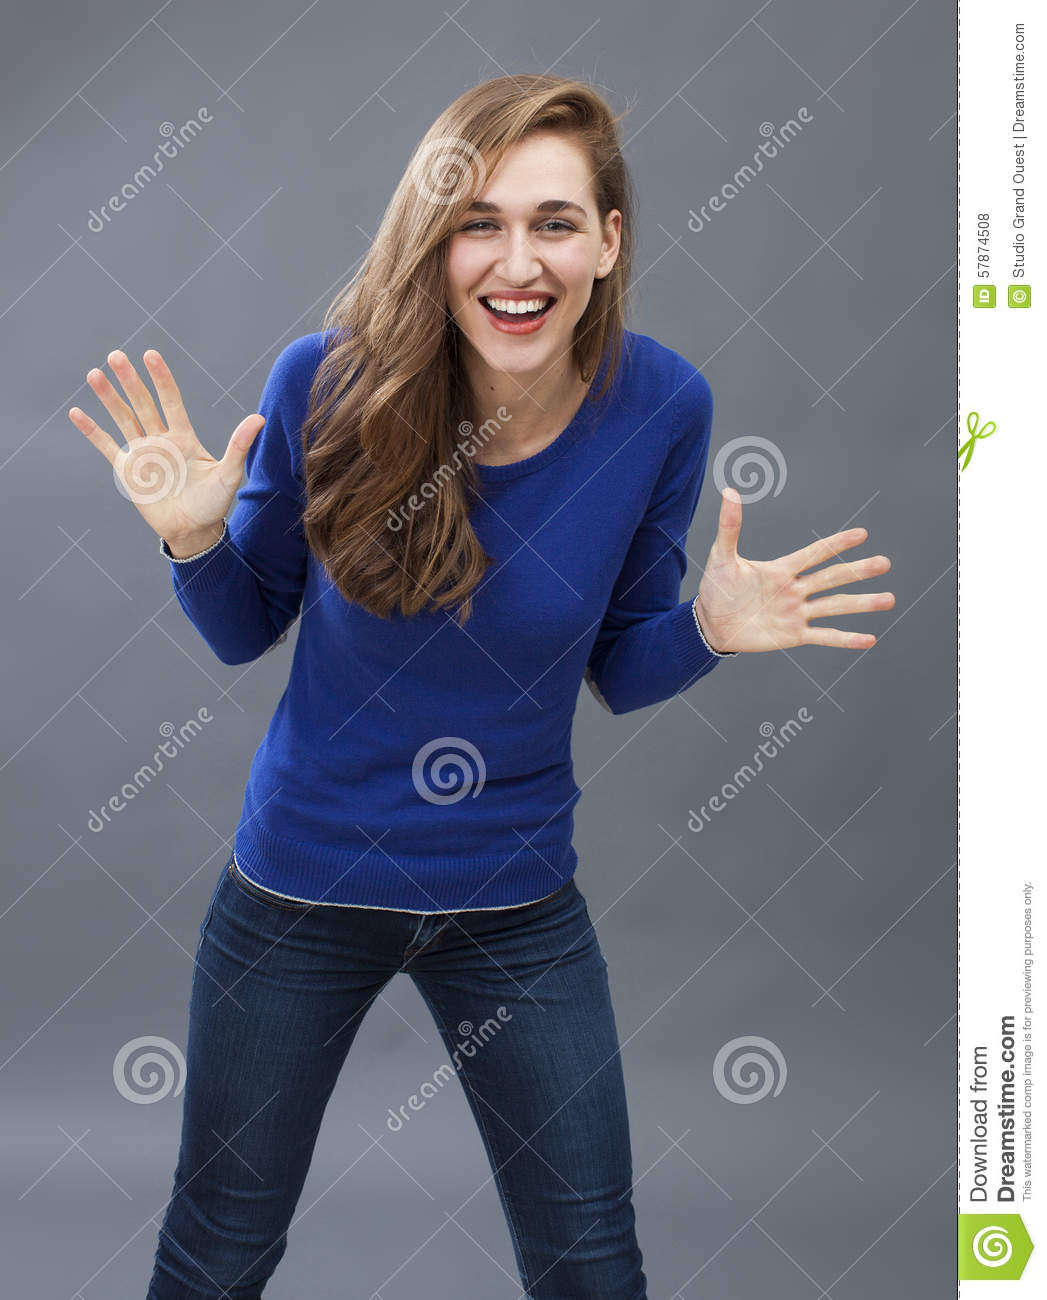 Energetic young woman smiling, having fun playing with her hands